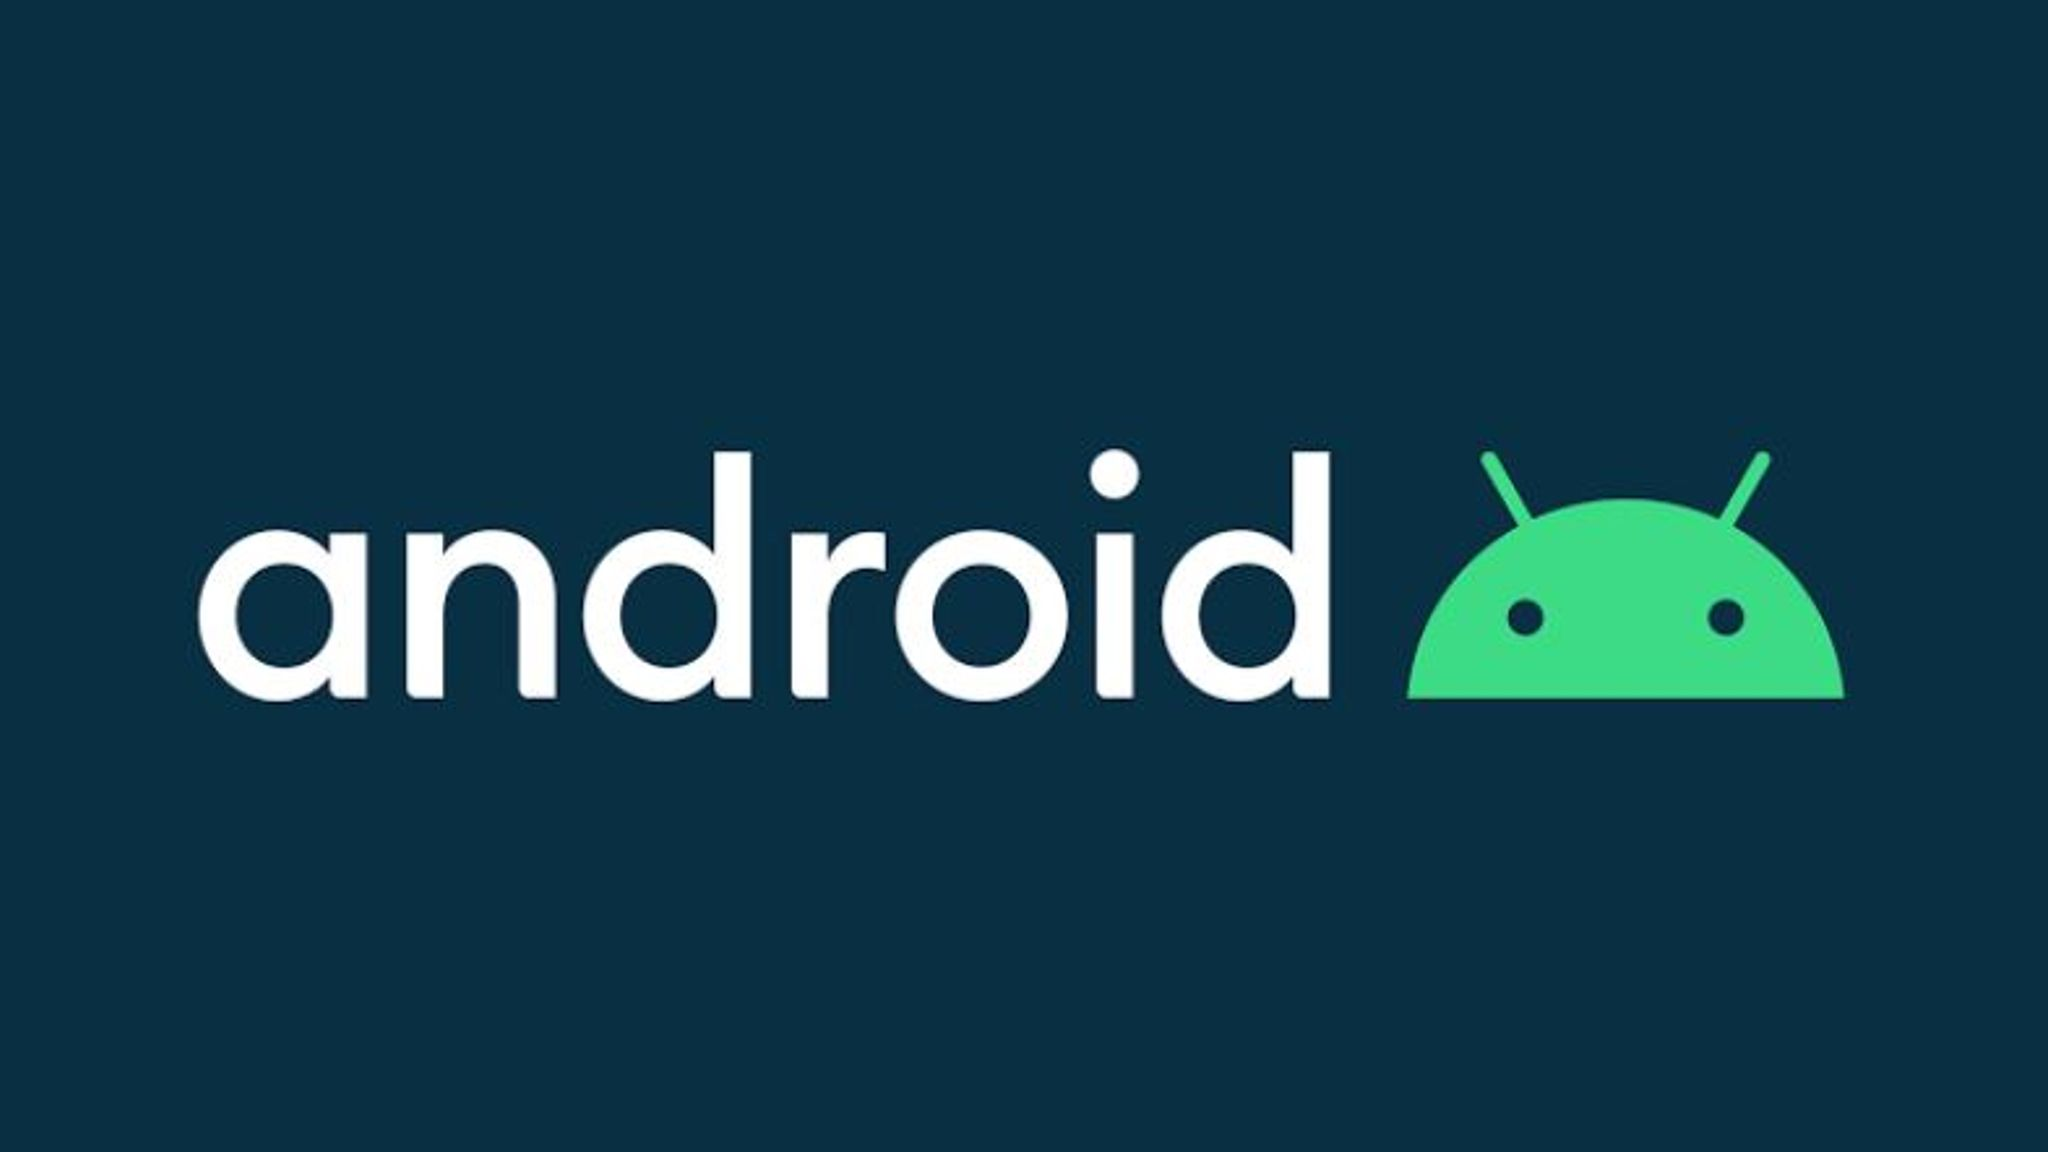 Android 10: Google has no room for dessert with next update to mobile OS